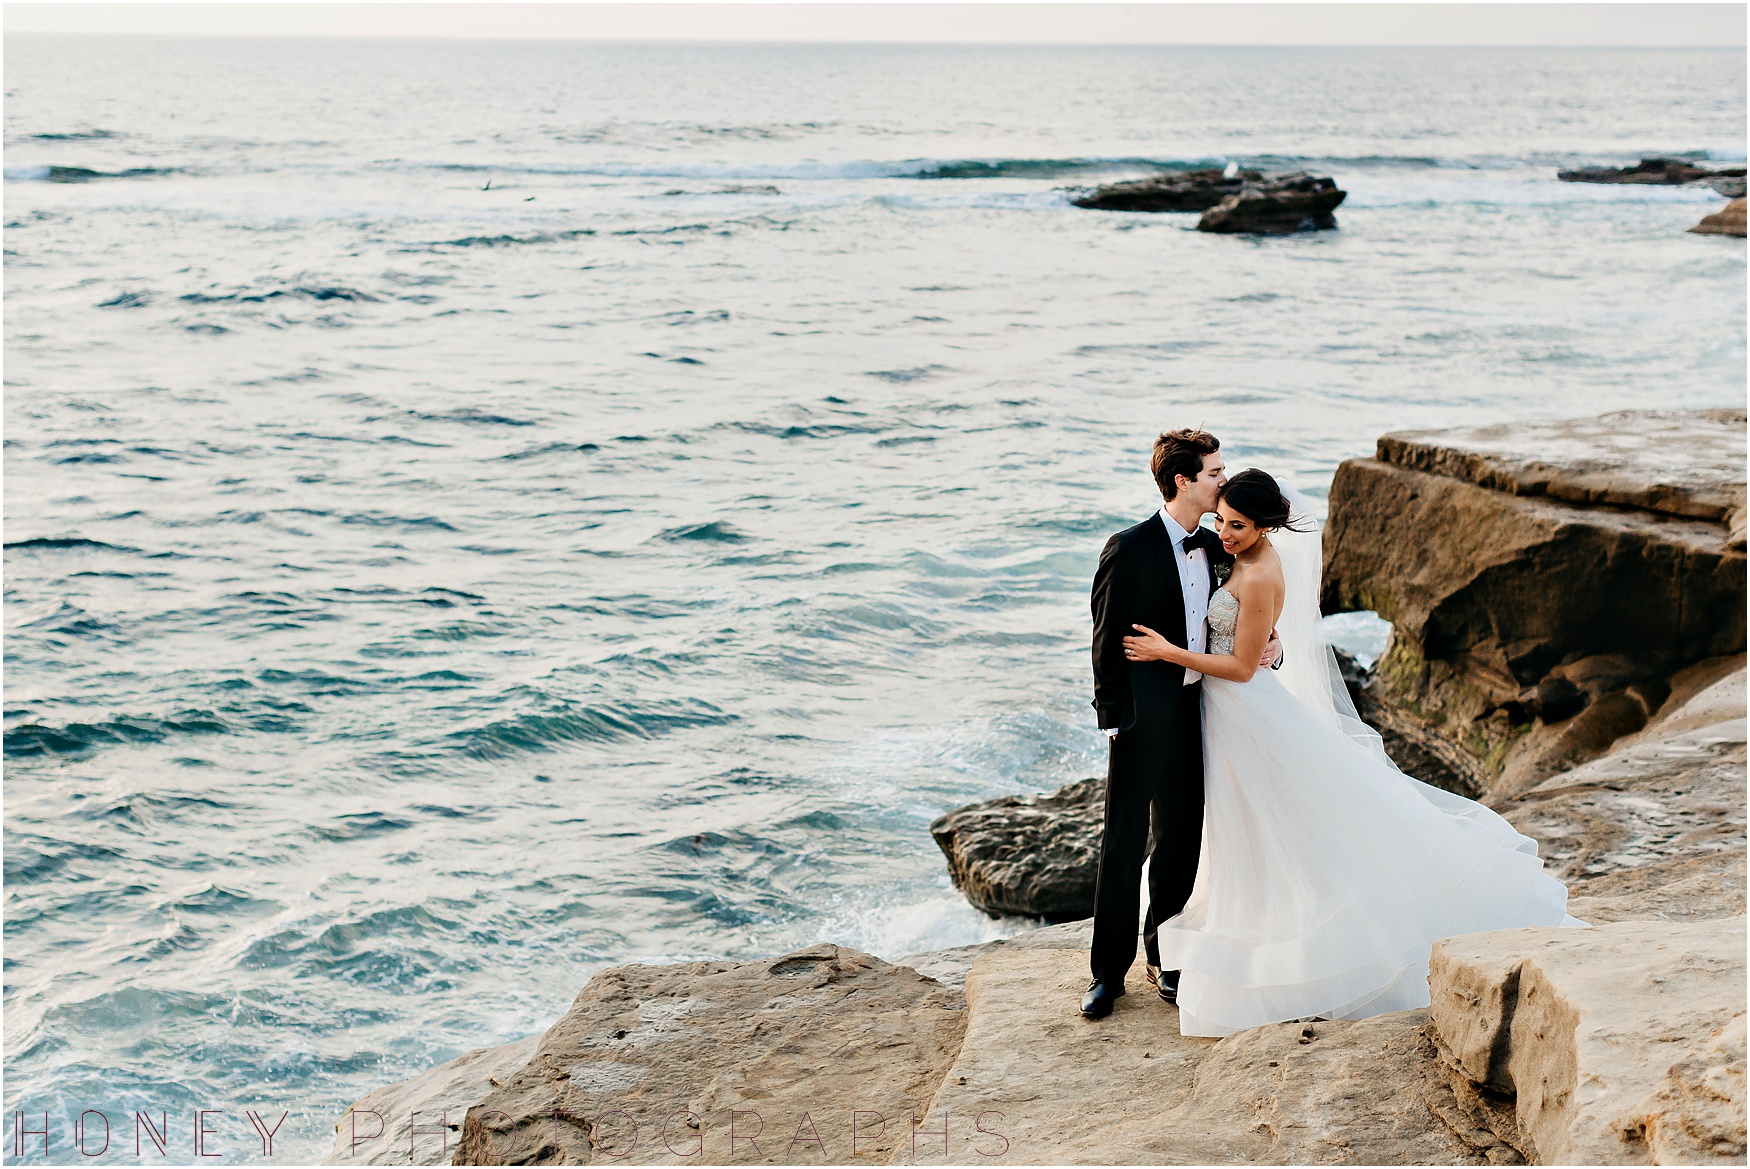 la_jolla_timeless_classic_elegant_cliffs_beach_black_tie_wedding045.jpg